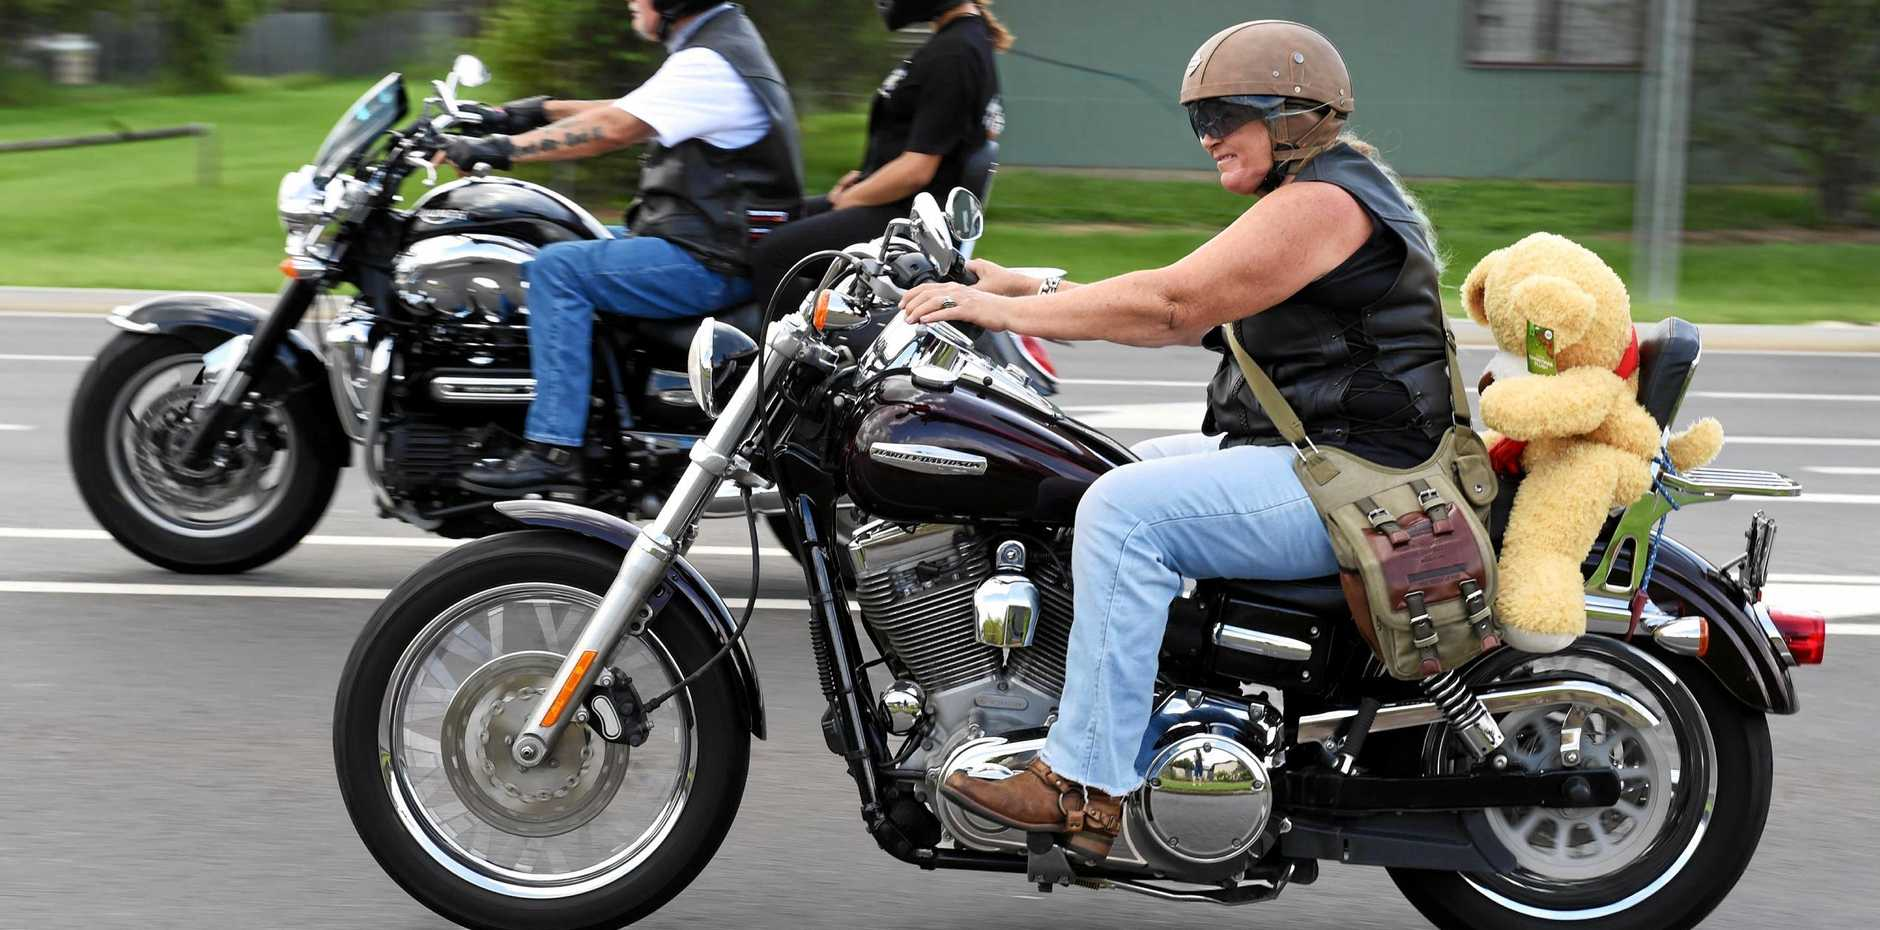 MOTOR ON: Fraser Coast Independent Riders will ride around the streets of the Heritage City before heading out to an event in Biggenden raising money for the Maryborough Hospital Auxiliary.